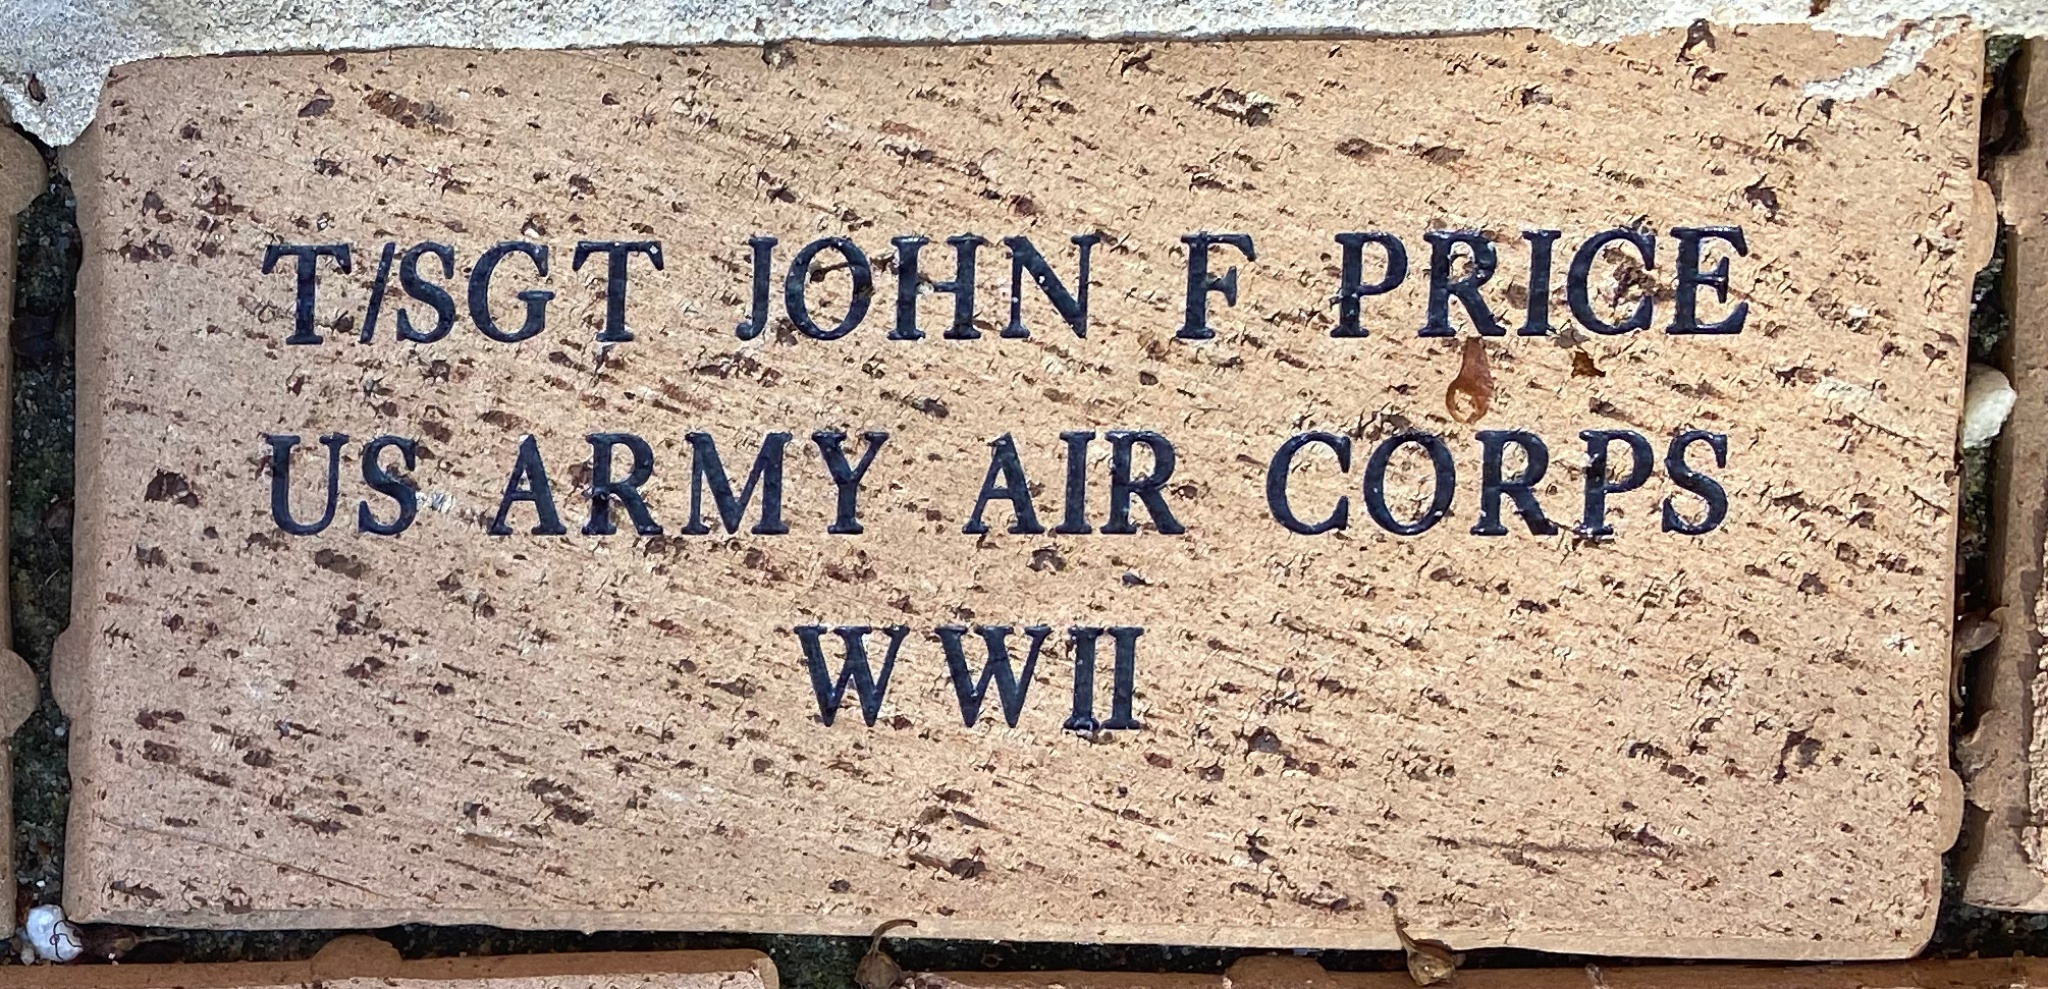 T/SGT JOHN F PRICE US ARMY AIR CORPS WWII